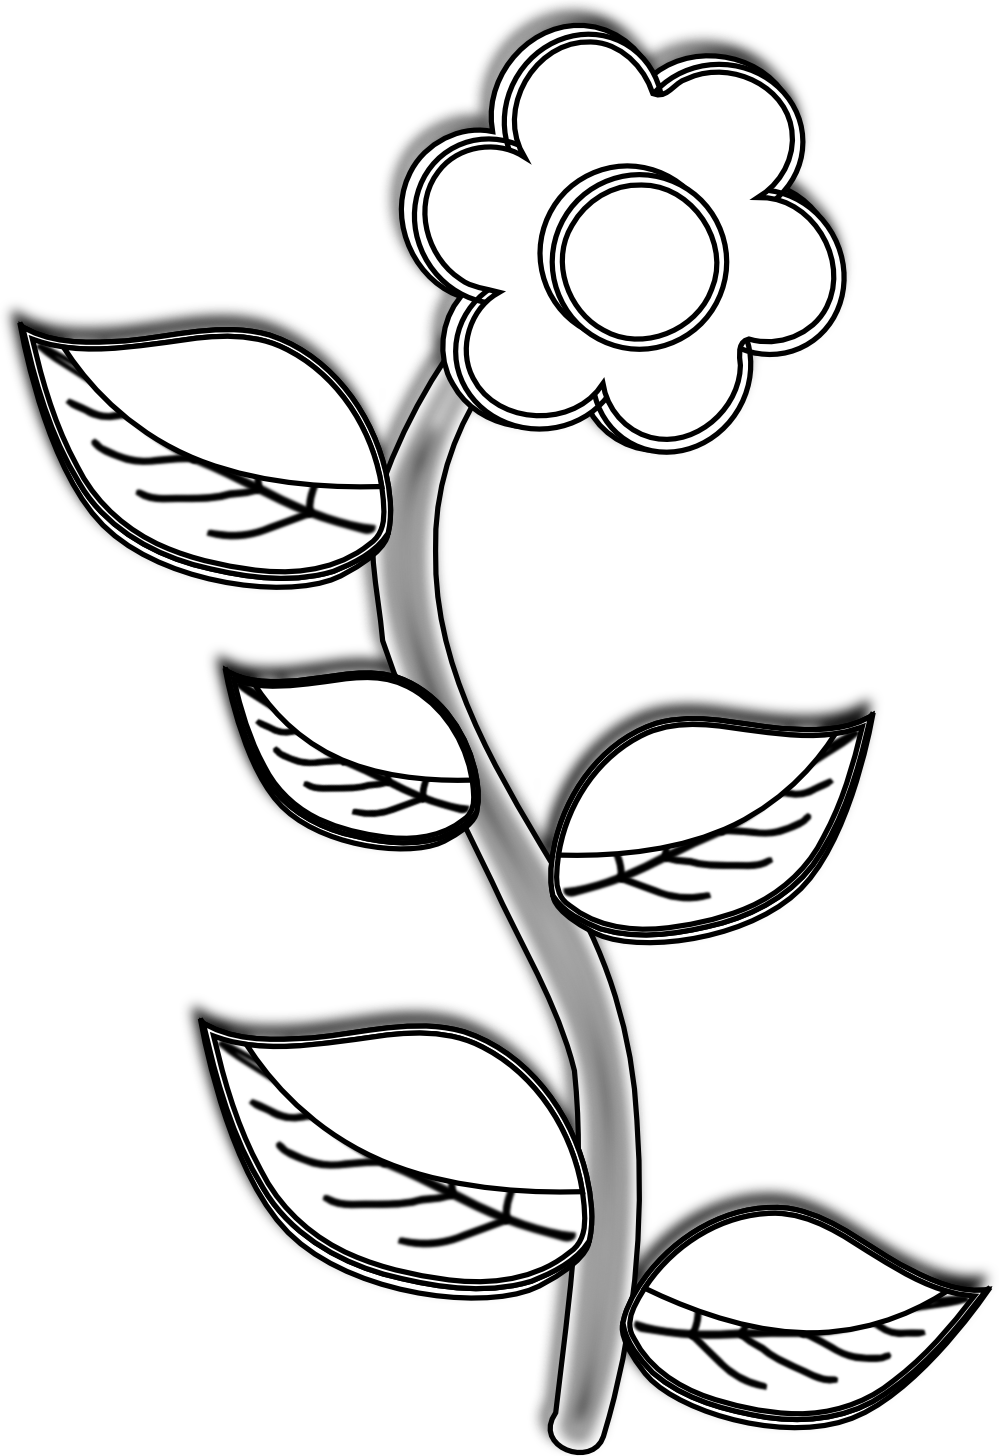 Rose clipart drawn. Flower drawings in black